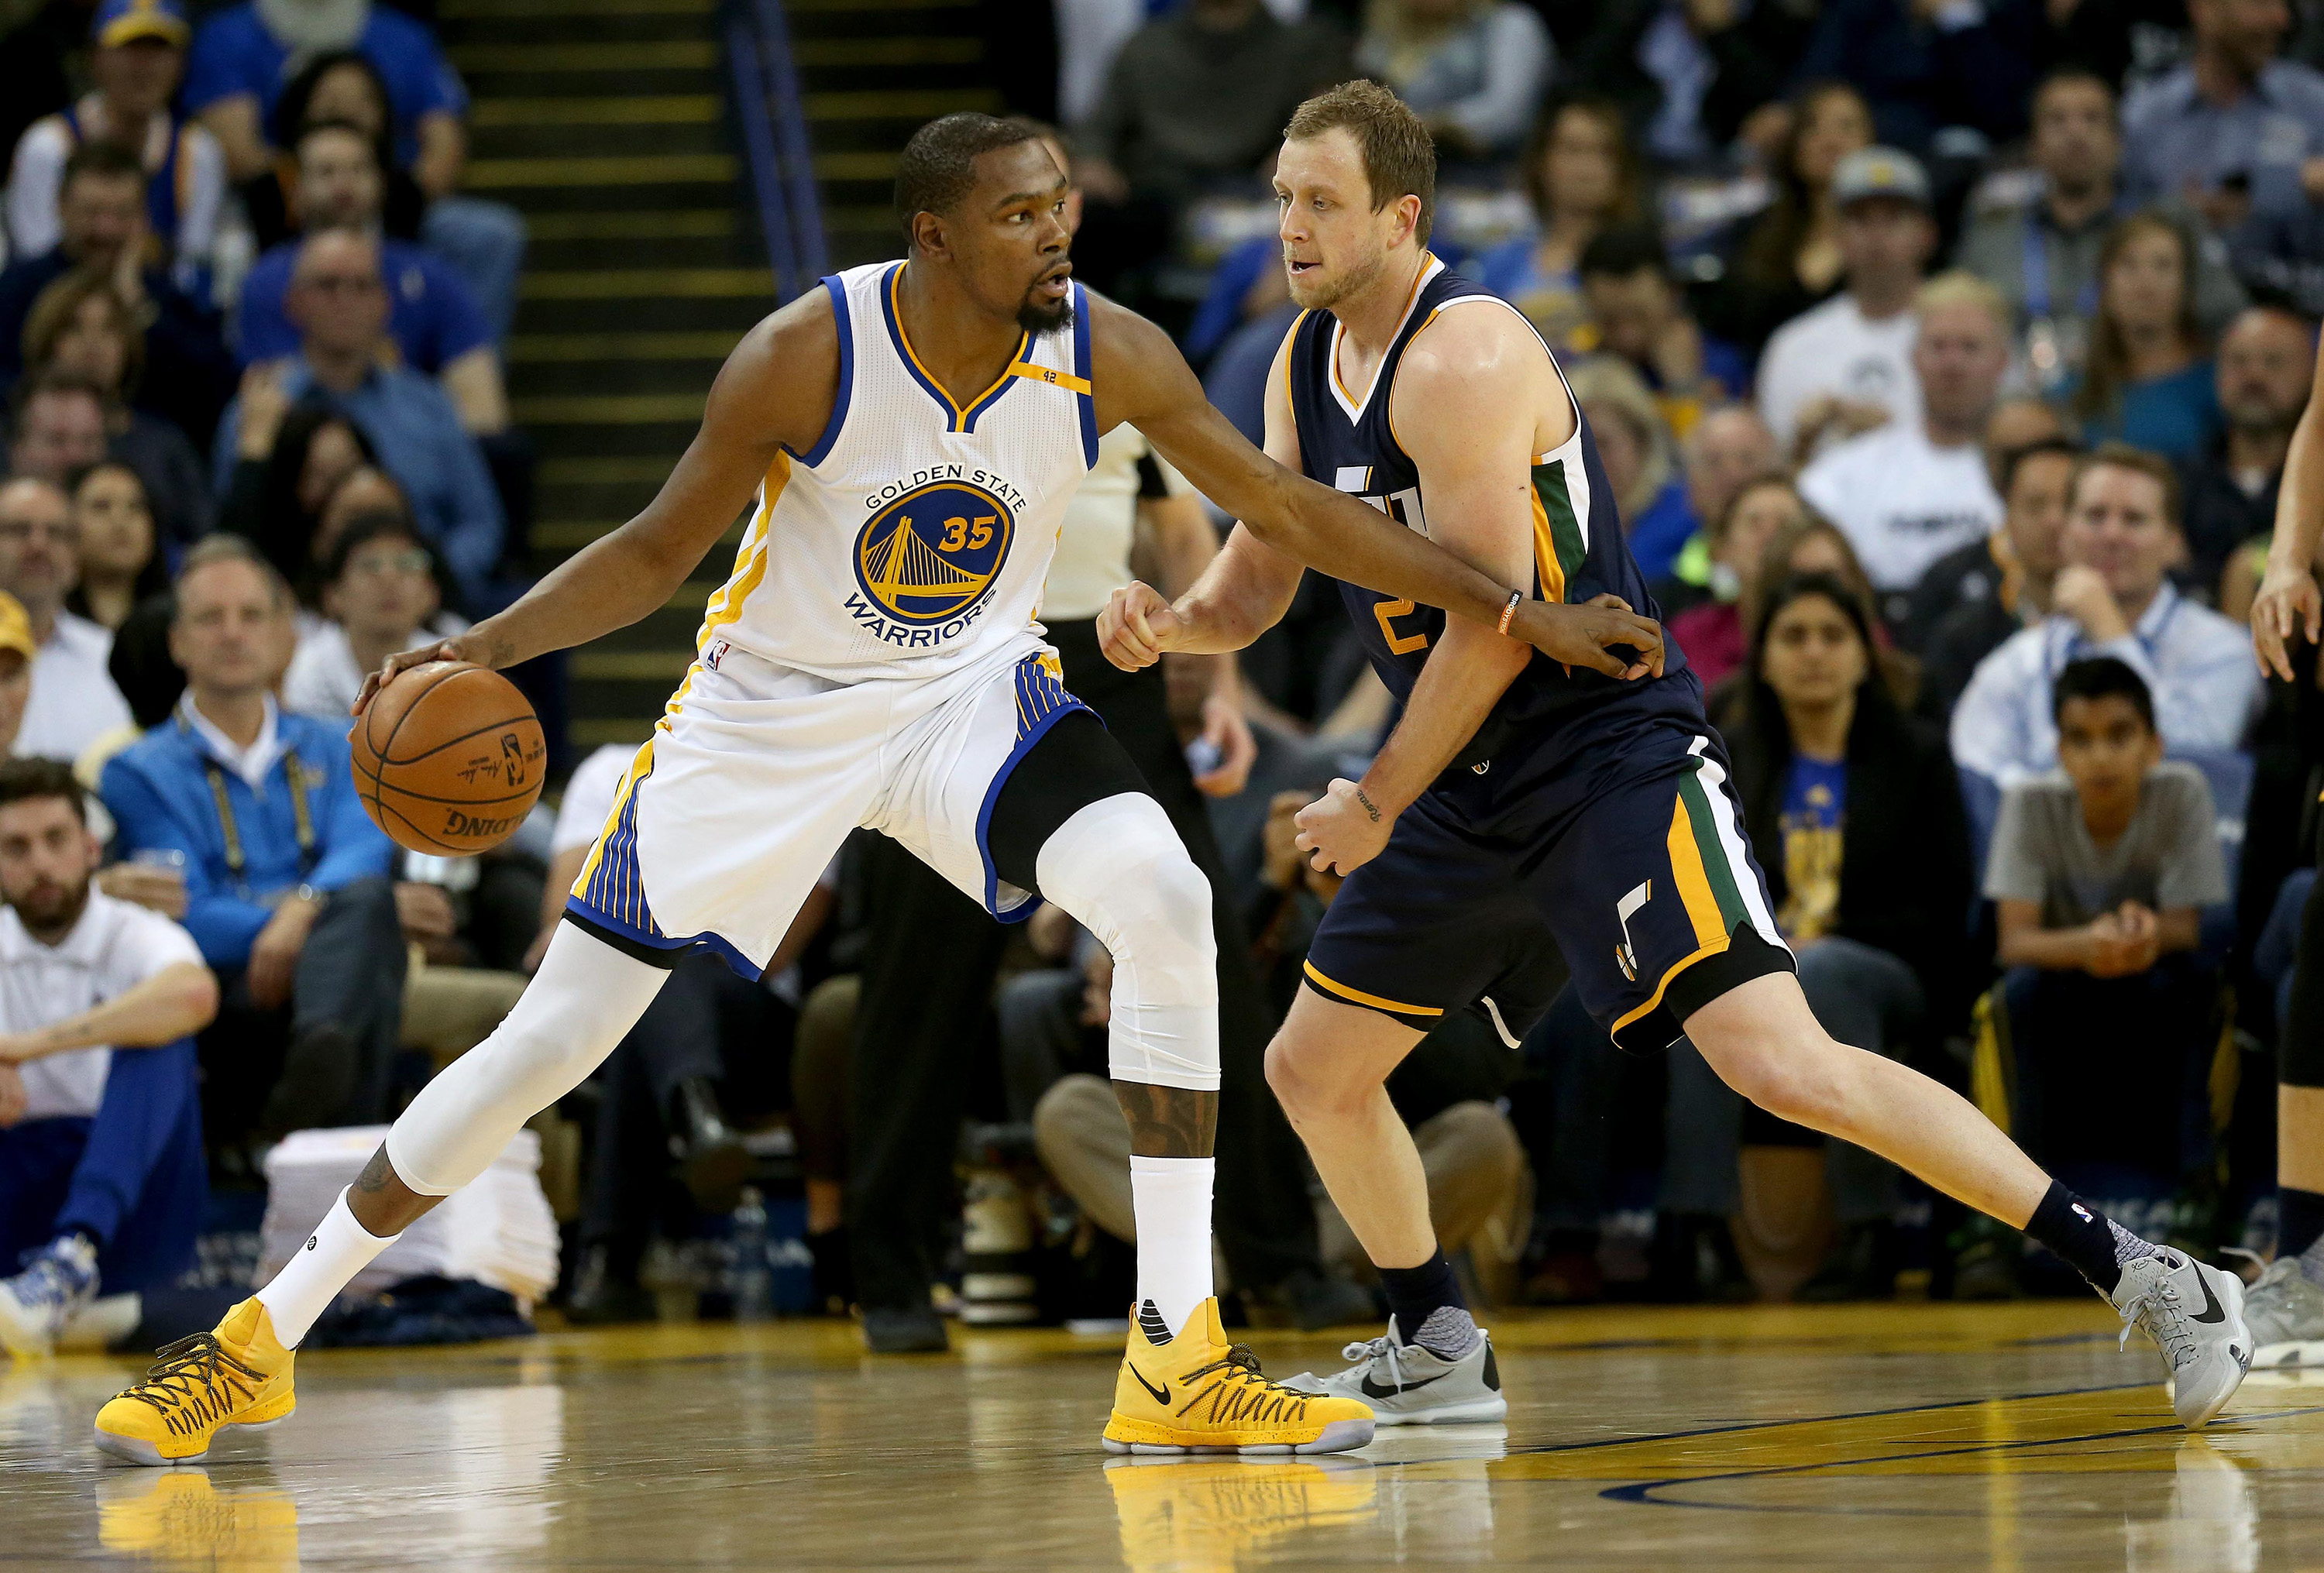 When Kevin Durant was in the Warriors' lineup, they won games by an average of 12-plus points. (Tribune News Service)